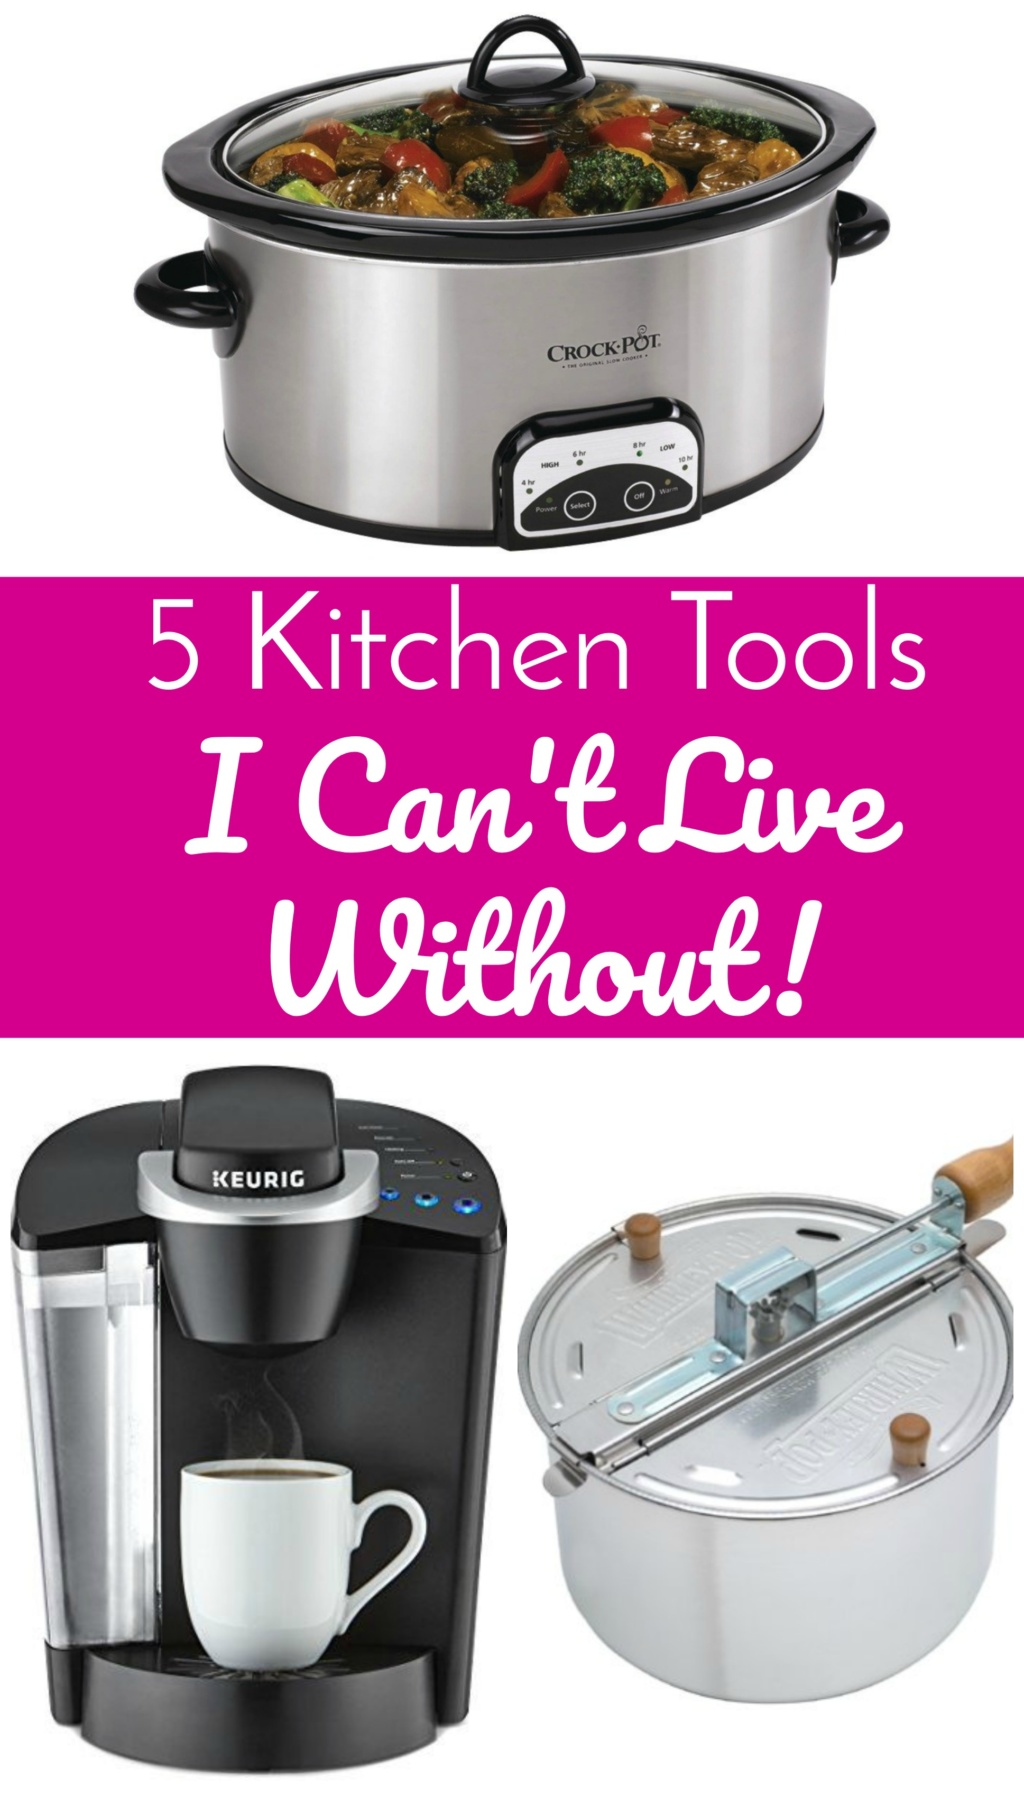 5 Kitchen Tools I Canot Live Without